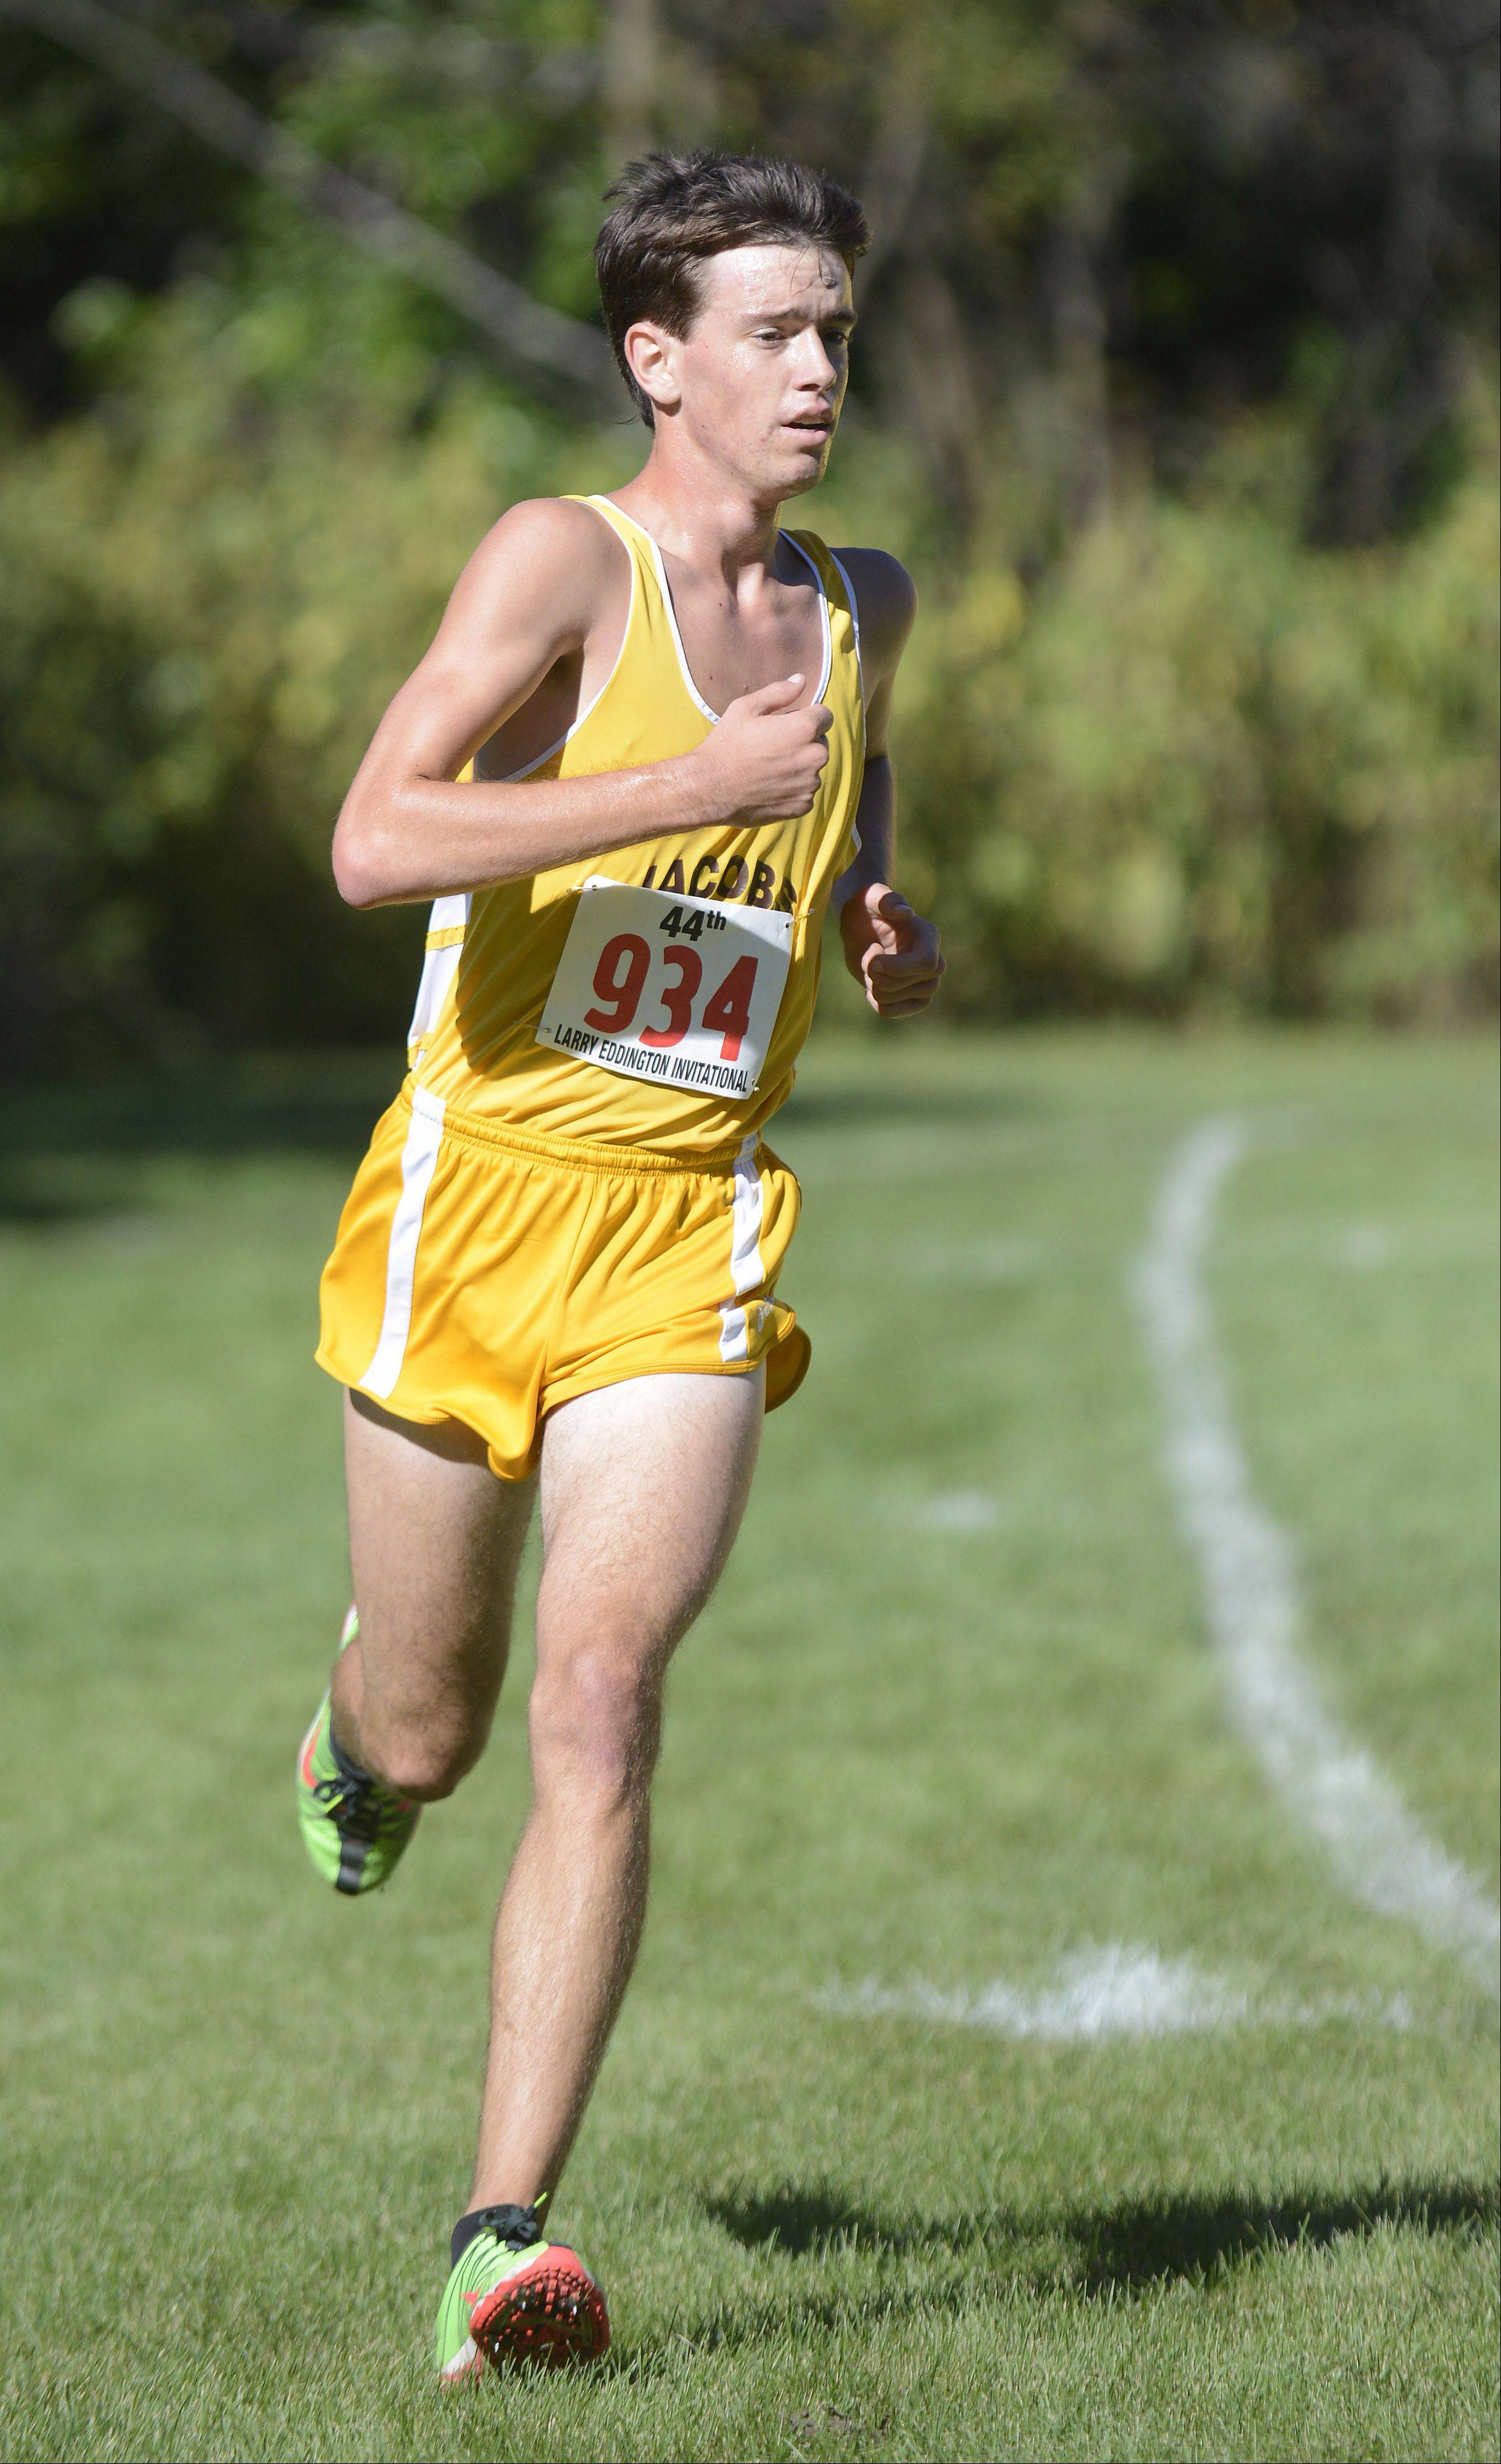 Jacobs' Matthew Johnson nears the finish line to take second place at the Kaneland Invitational cross country meet in Elburn on Saturday, September 21.